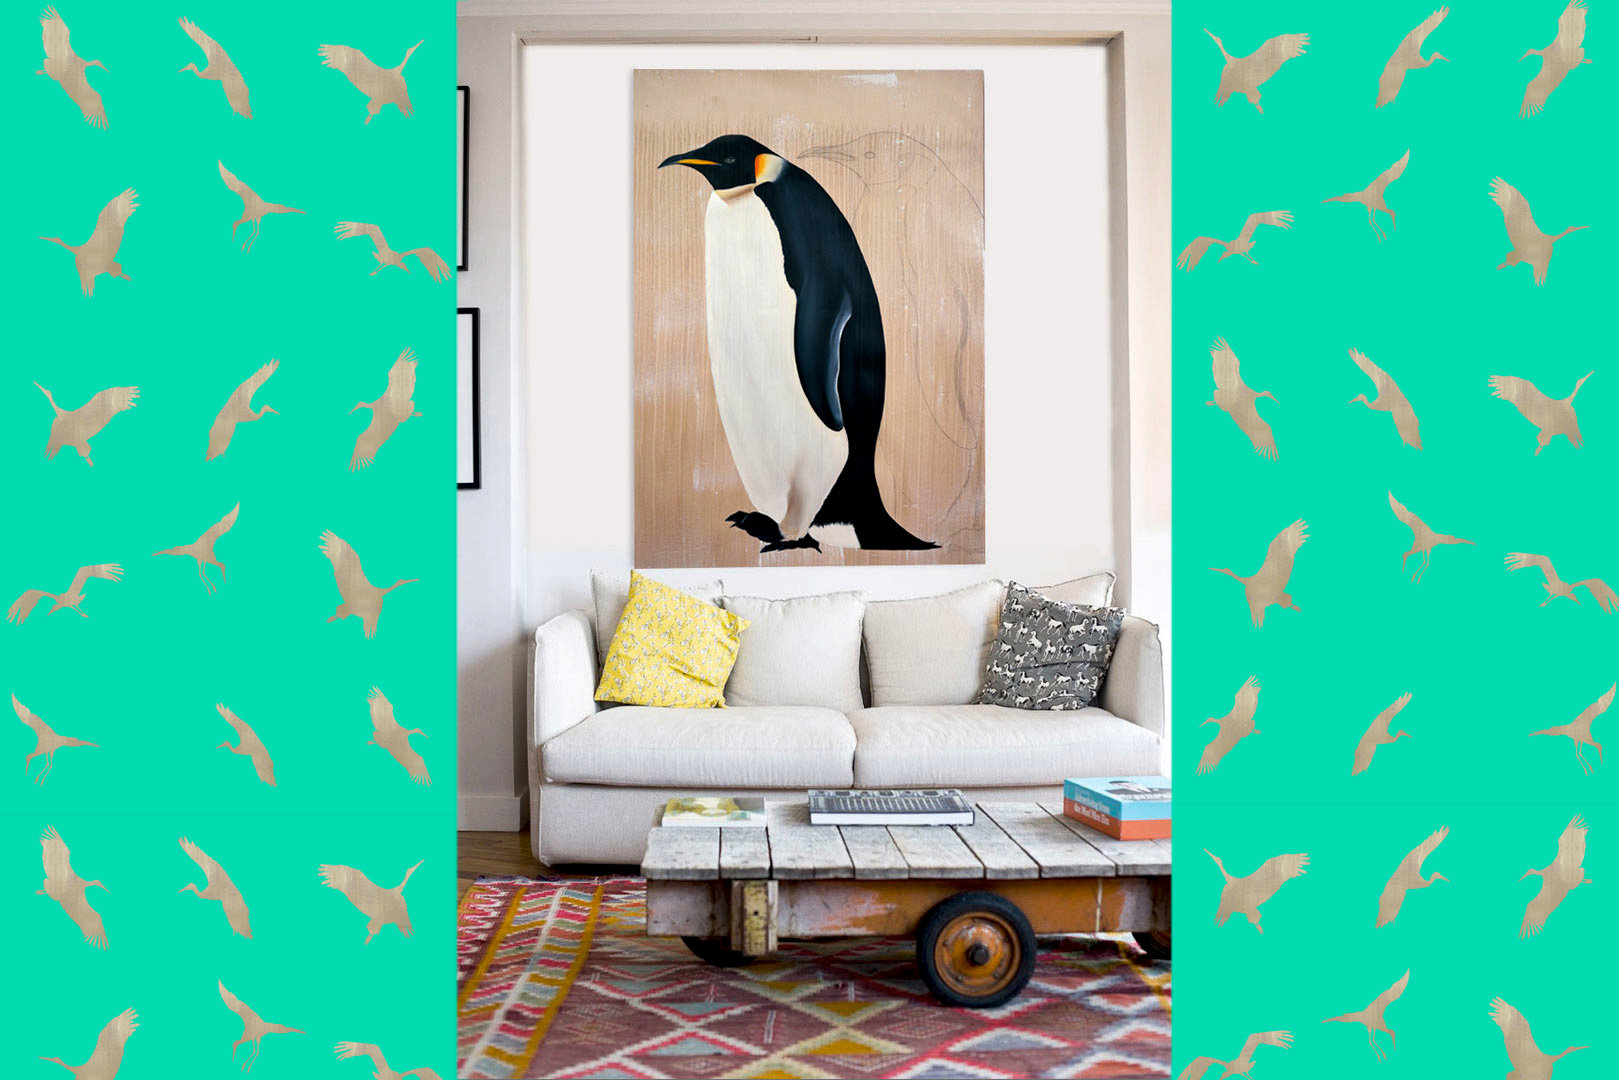 MANCHOT-EMPEREUR penguin-emperor-deco-decoration-large-size-printed-canvas-luxury-high-quality Thierry Bisch painter animals painting art decoration hotel design interior luxury nature biodiversity conservation